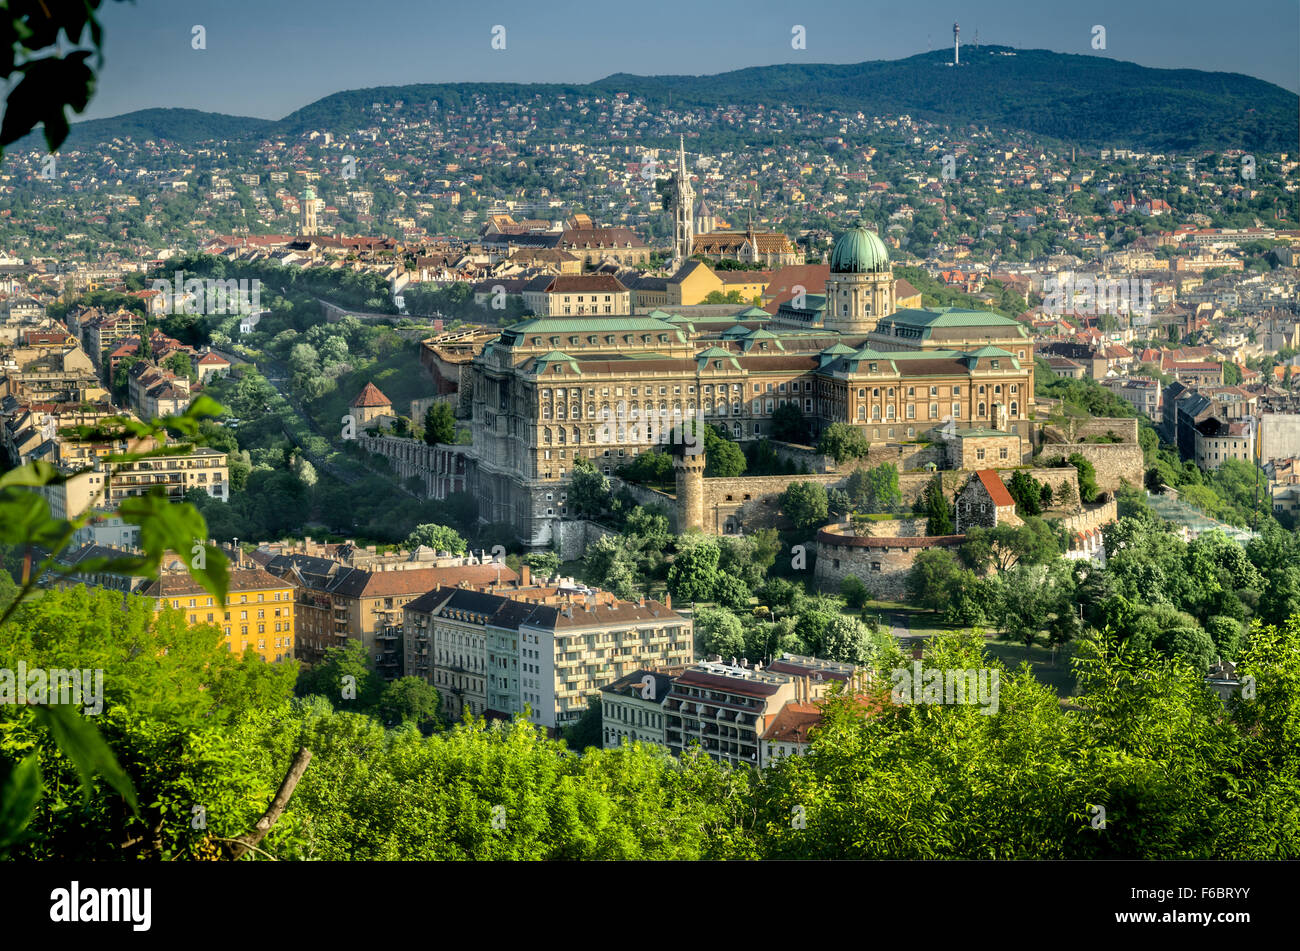 Royal Palace situated on Castle Hill. Budapest, Hungary Stock Photo